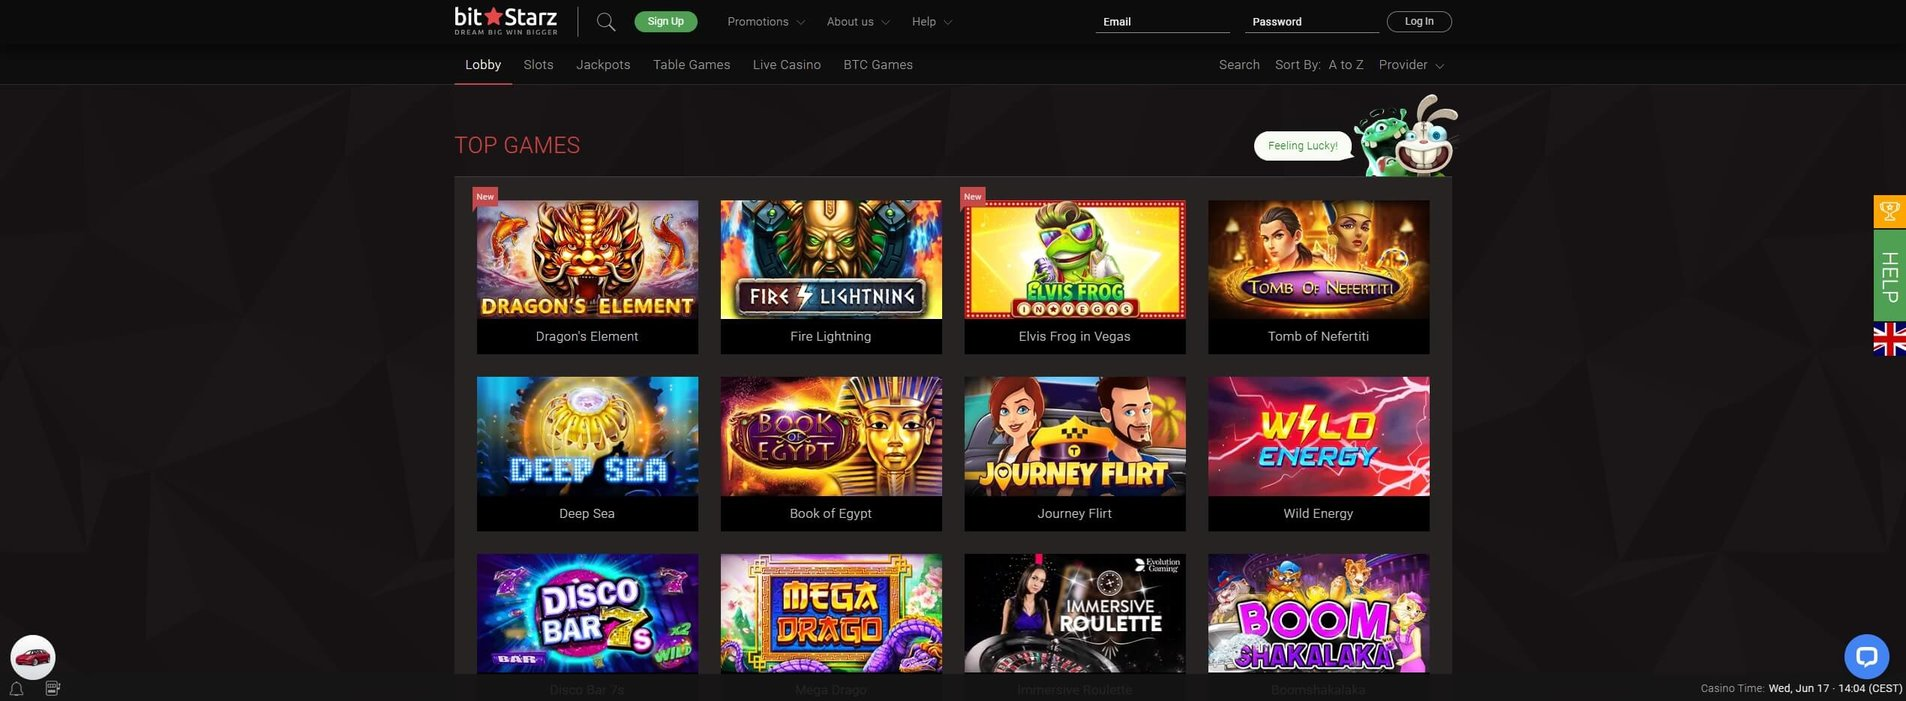 Games at BitStarz Casino